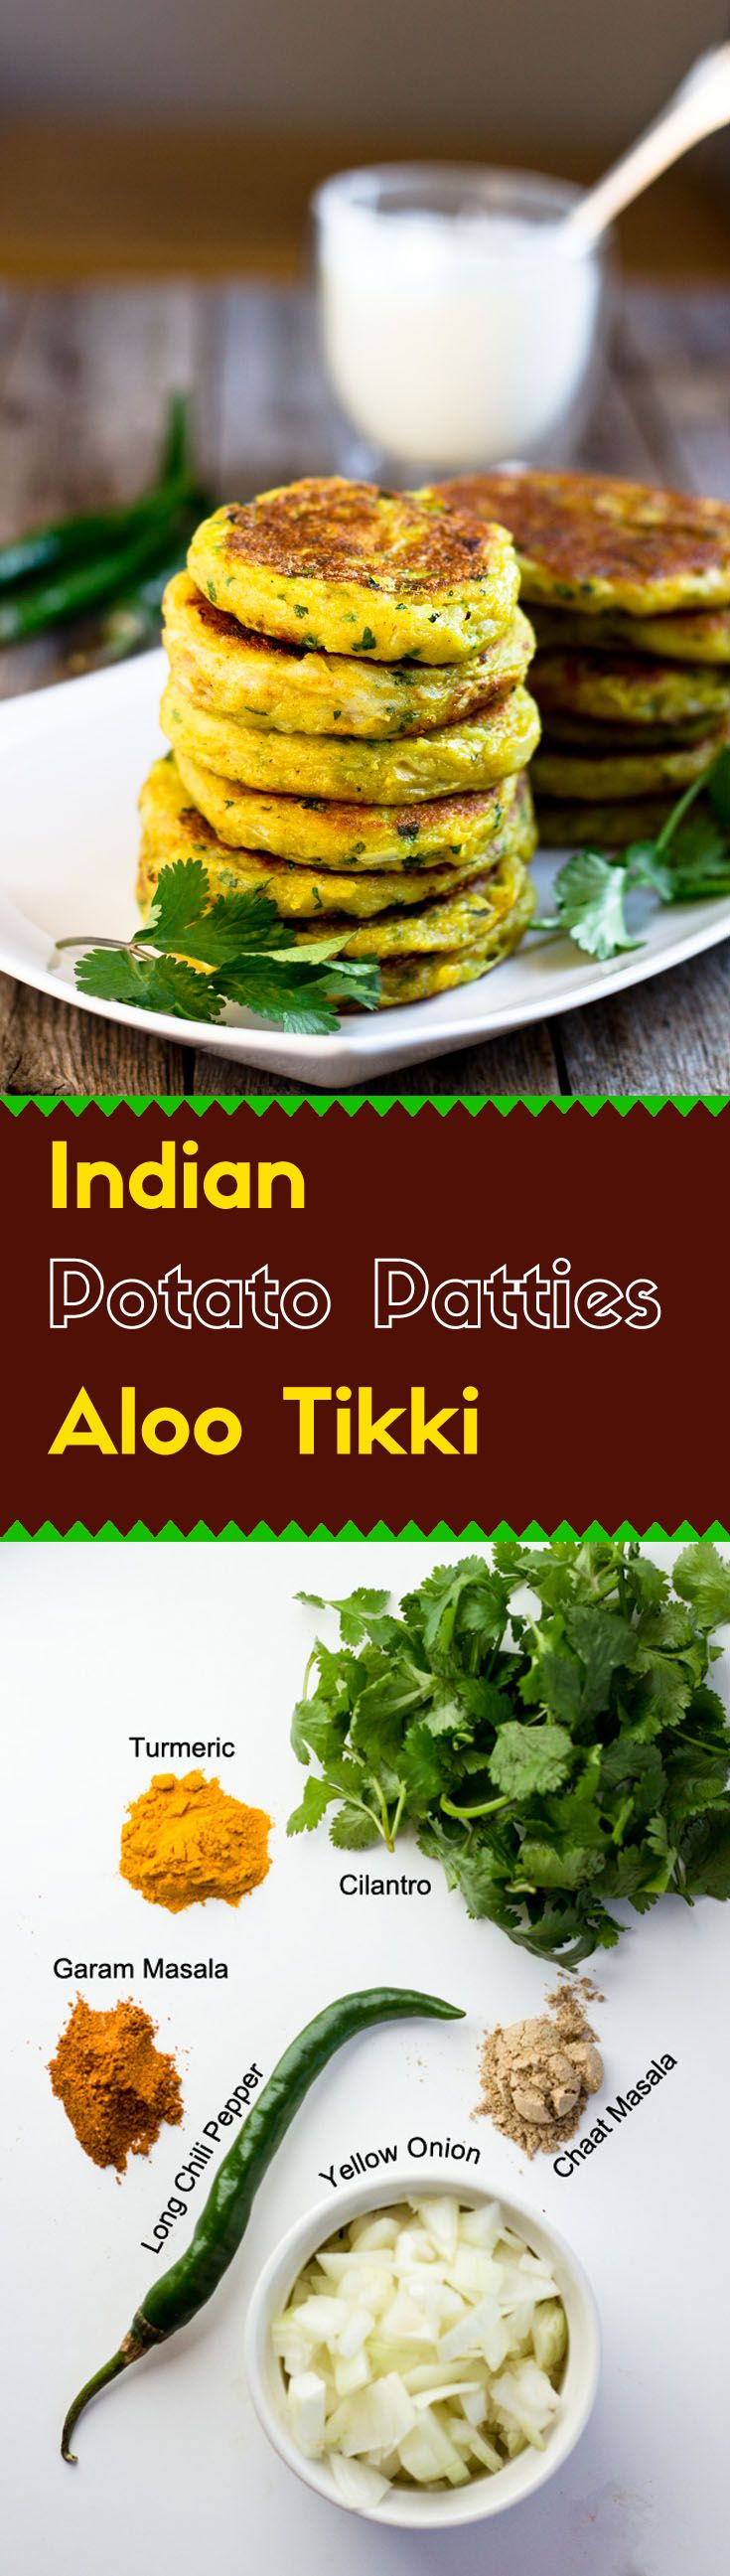 These Indian potato patties are rich in flavor and have complex textures. The addition of yellow onion and cilantro give the Aloo Tikkis a refreshing taste.